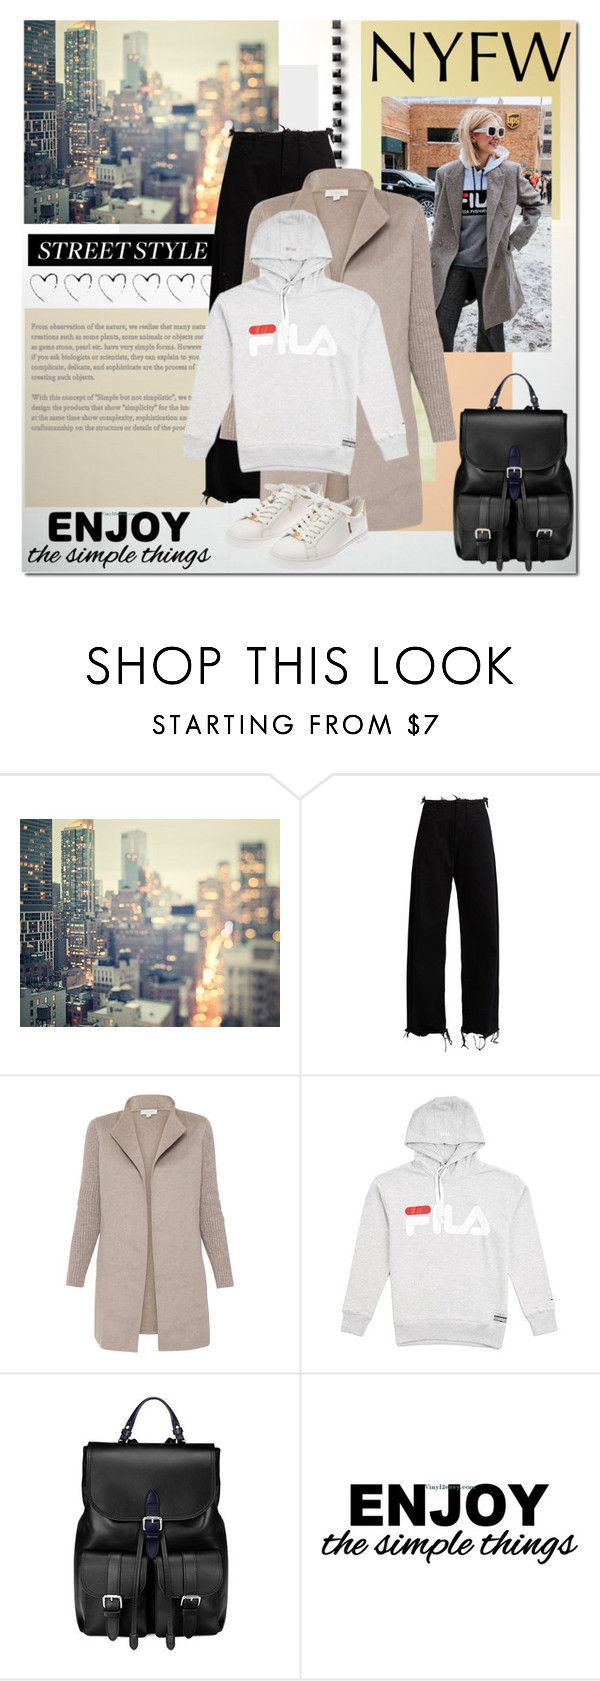 """""""NYFW Street Style"""" by elena-777s ❤ liked on Polyvore featuring WALL, Marques'Almeida, Kinross, Fila, Aspinal of London, Michael Kors, StreetStyle, NYFW, Newyork and 2017"""